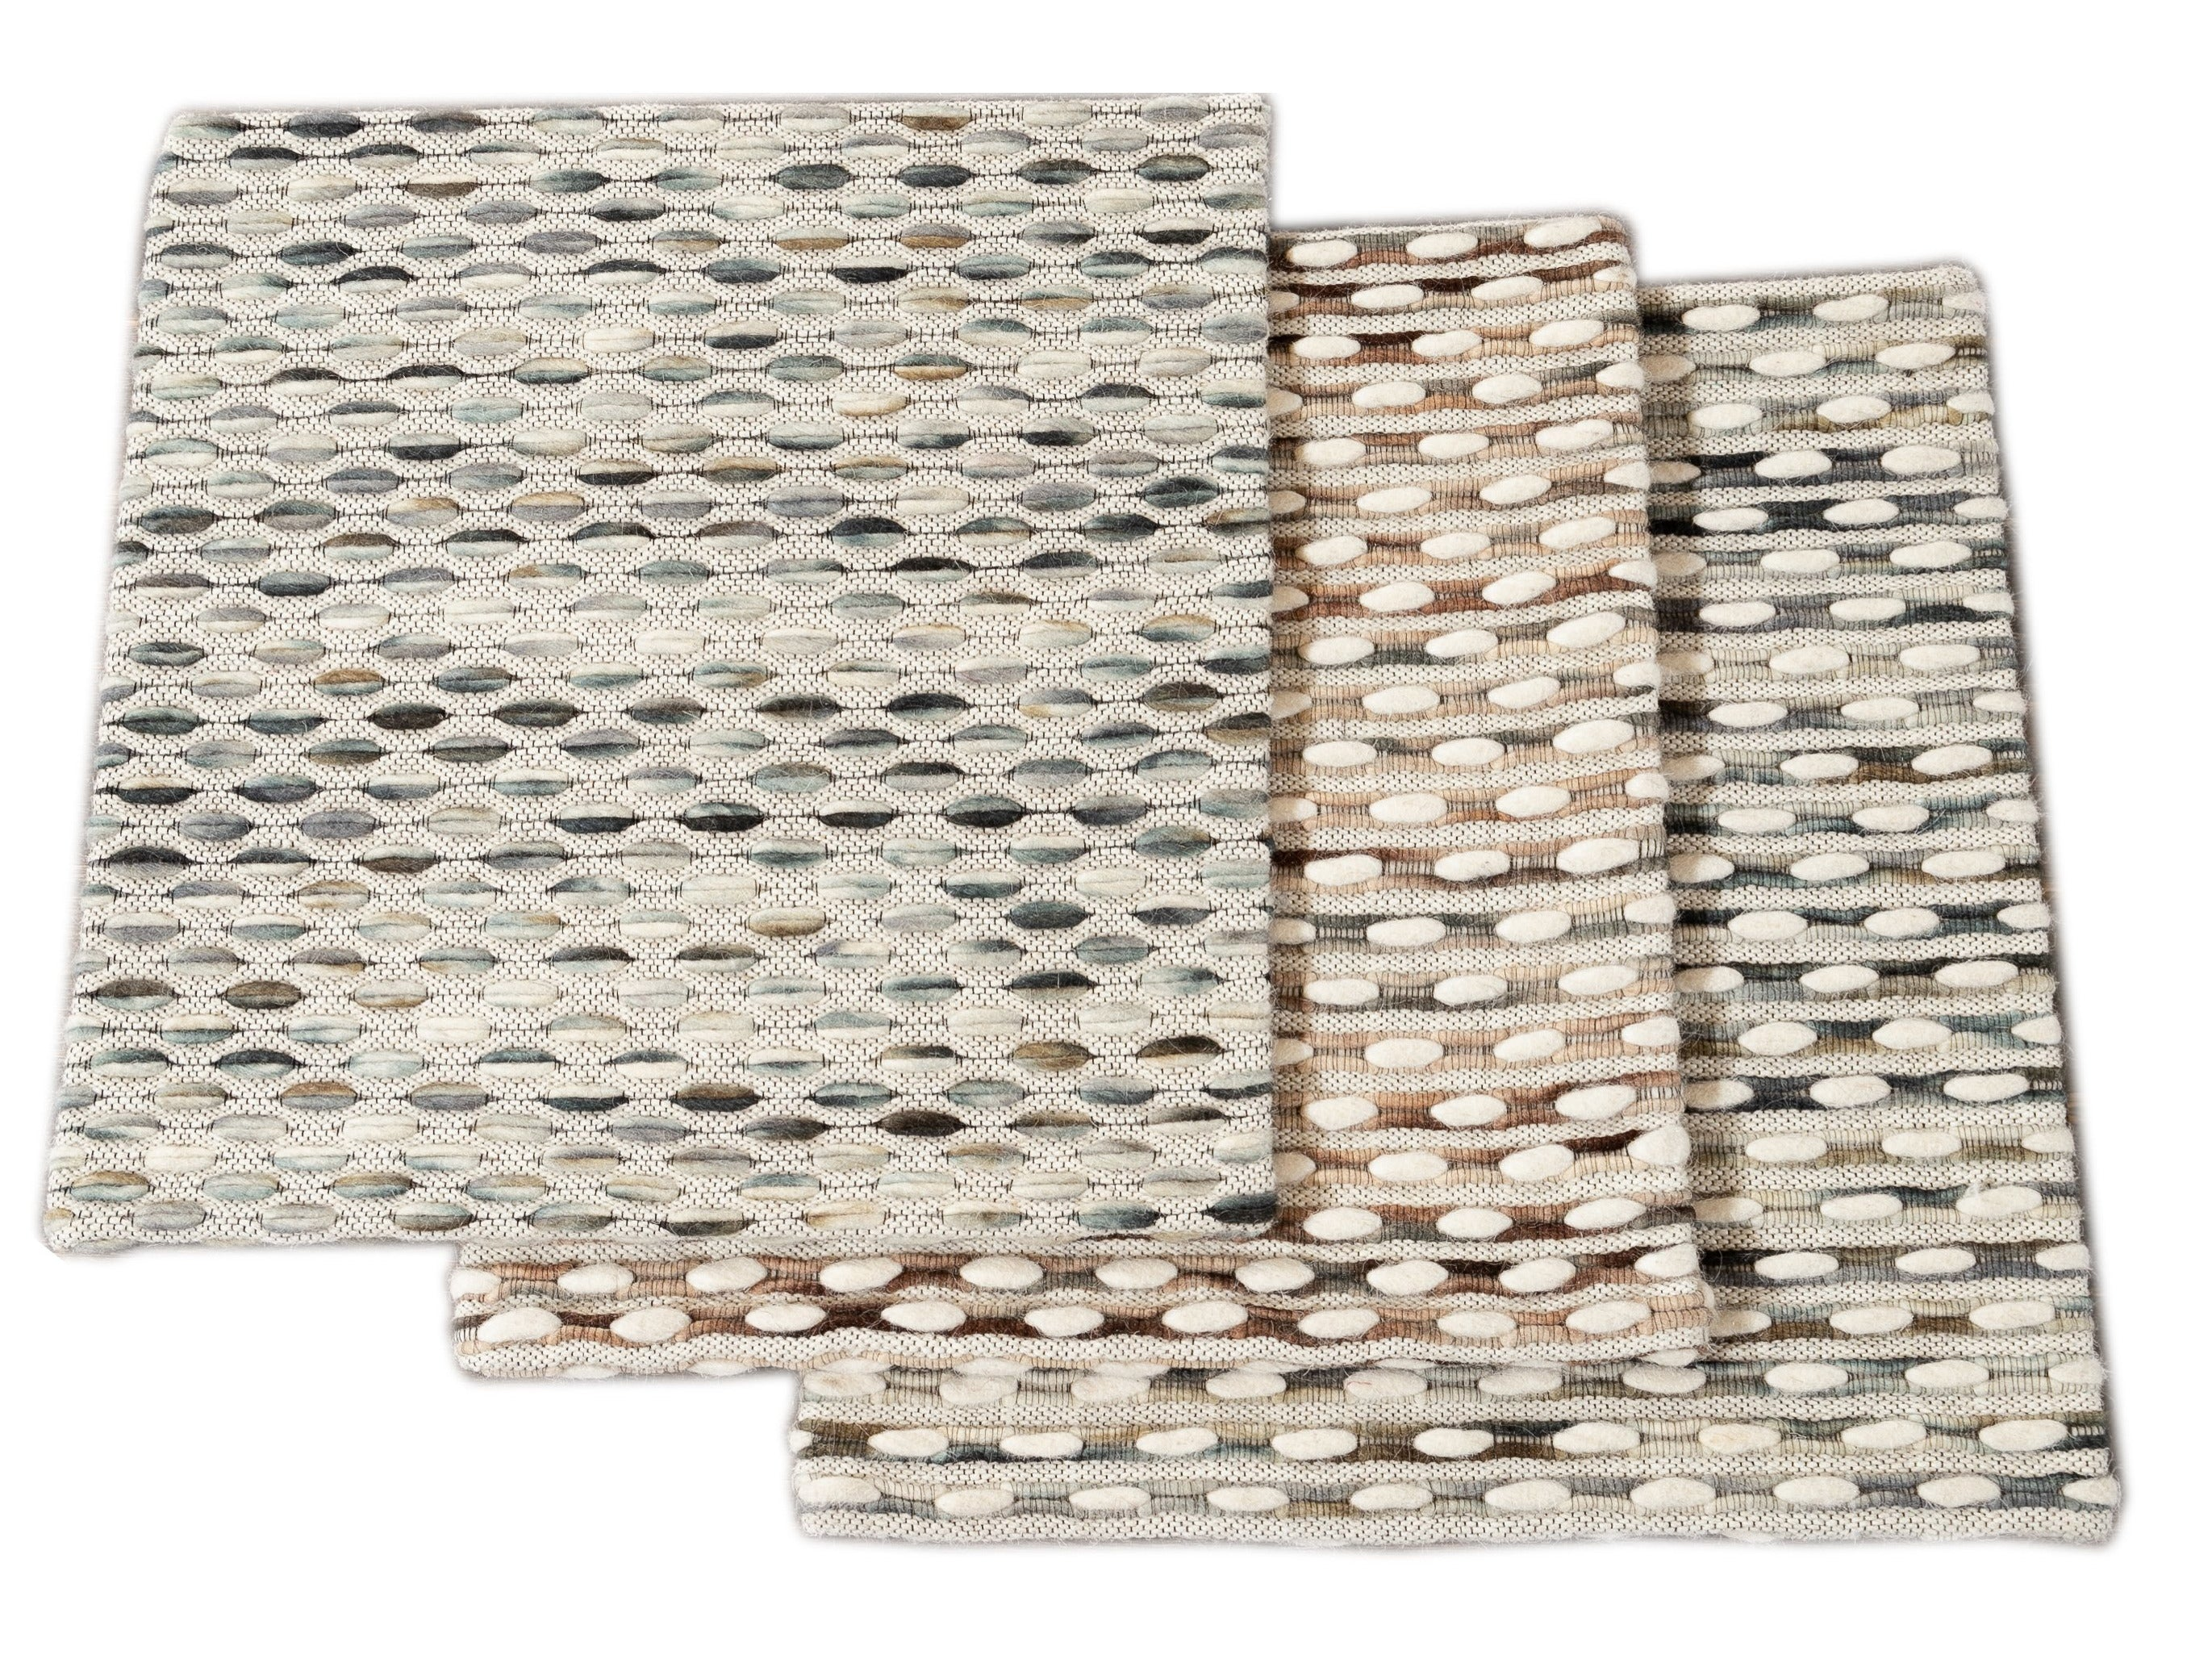 Easton Collection Woven Felt Textured Jaquard Wool Custom Rug